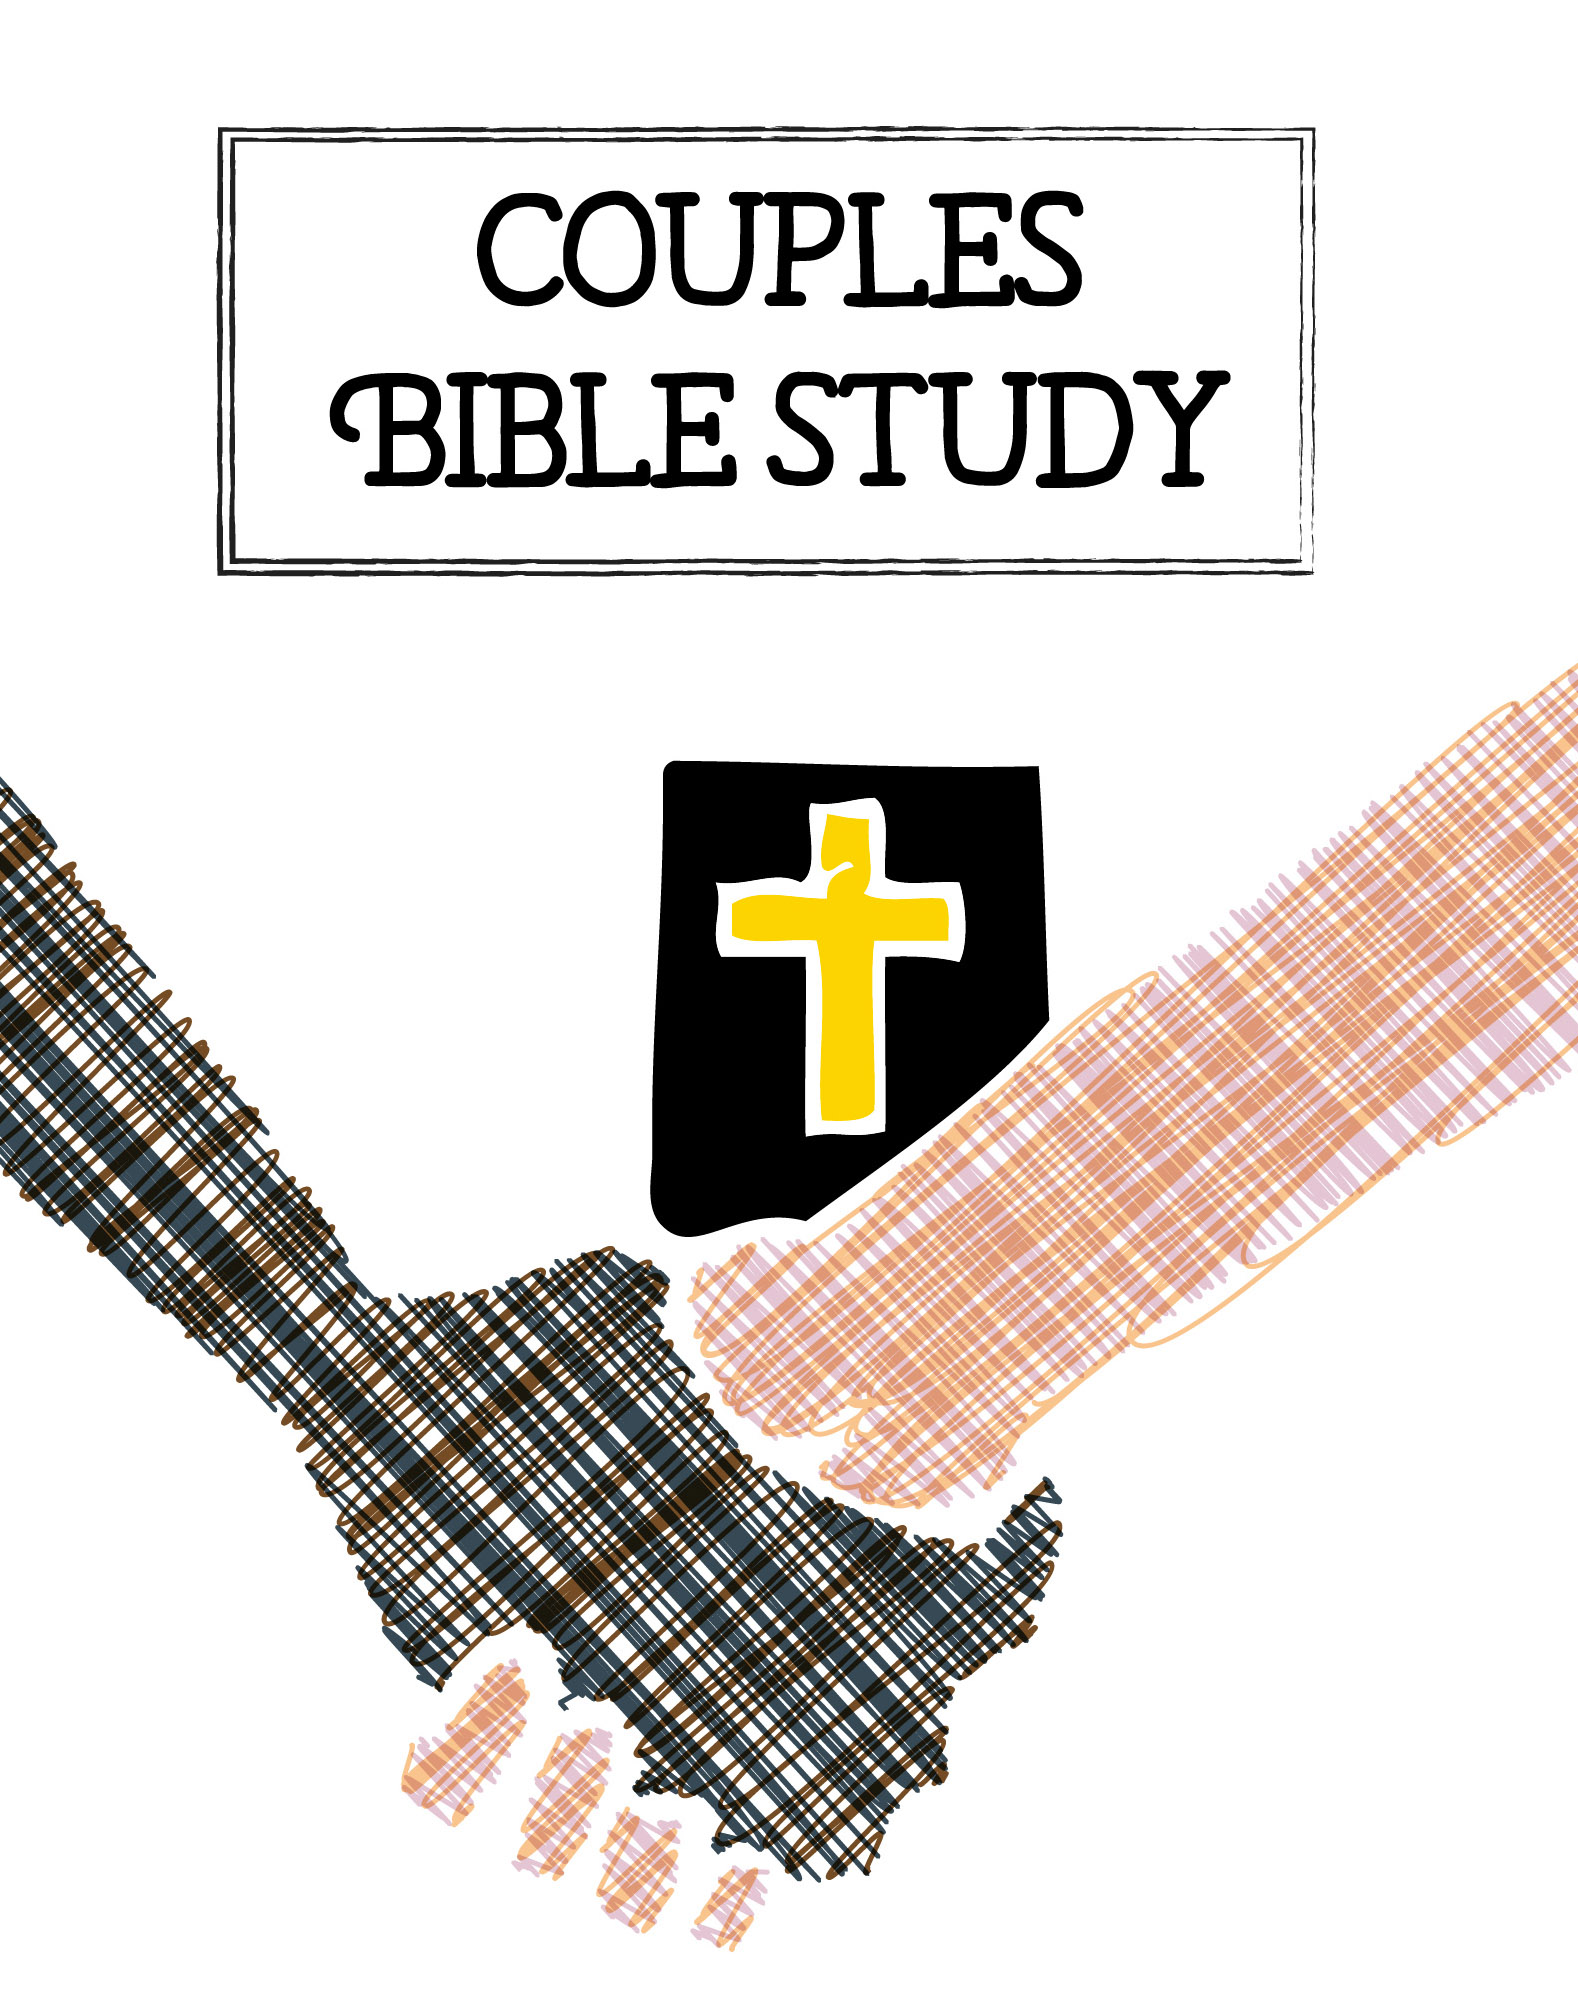 couples bible study 2017 cropped square